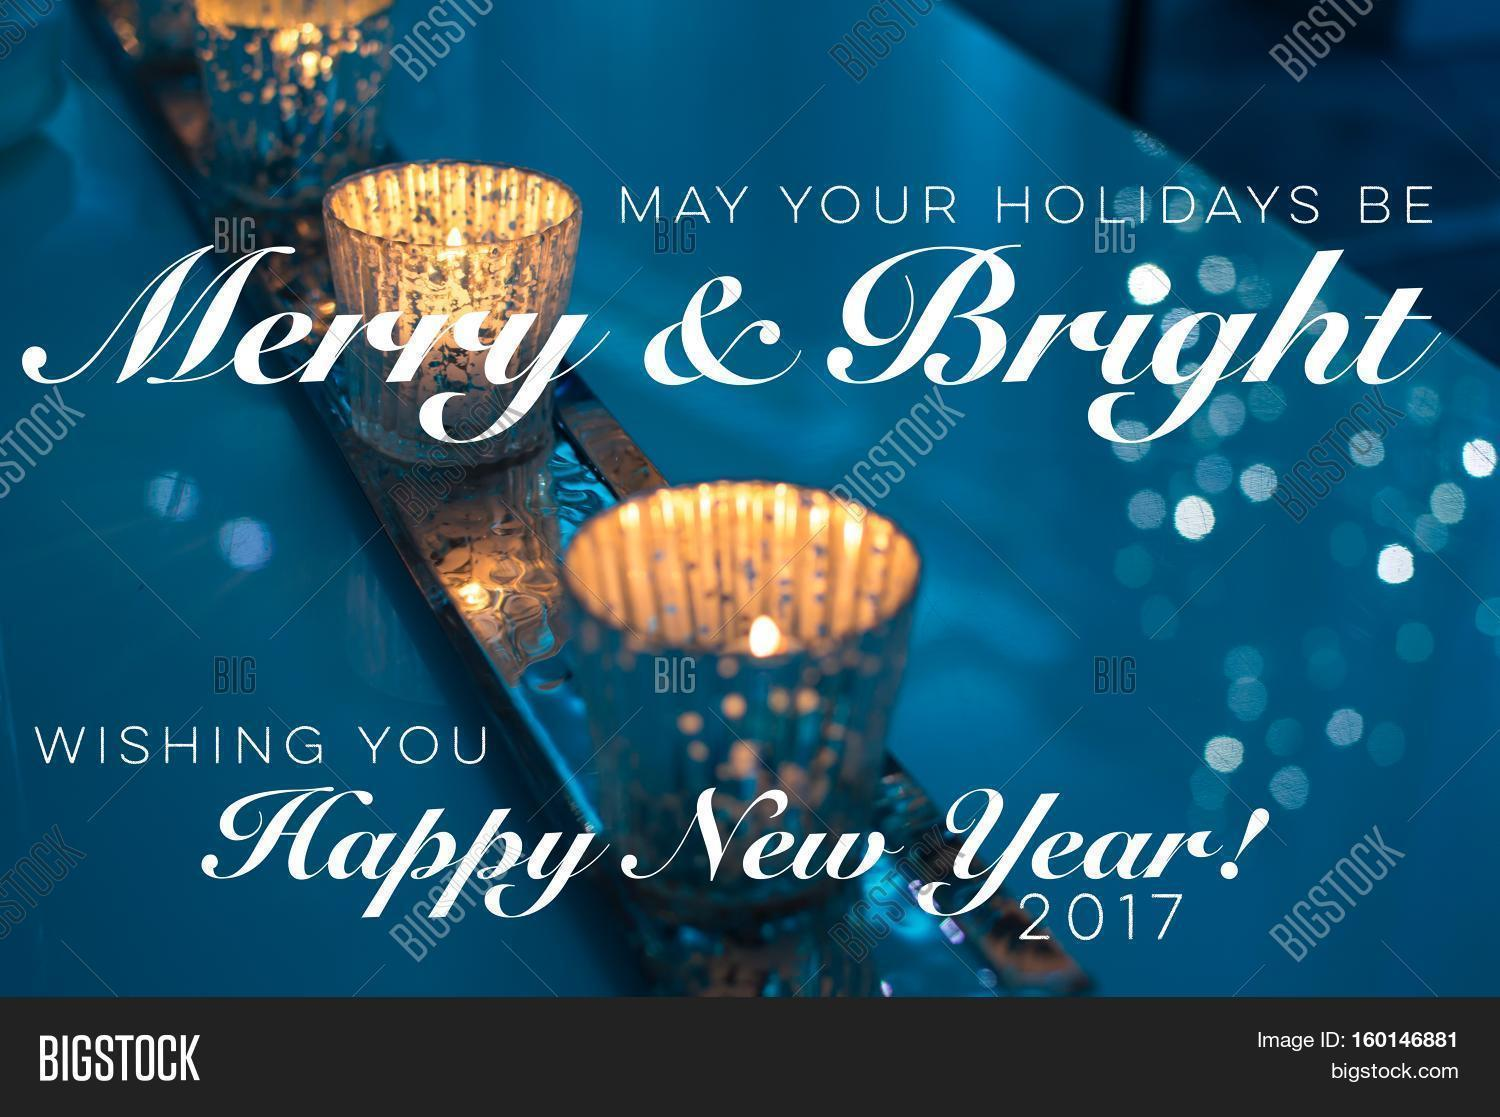 Holiday greeting card image photo free trial bigstock holiday greeting card with new years wishes 2017 non denominational with beautiful candles burning with sparking m4hsunfo